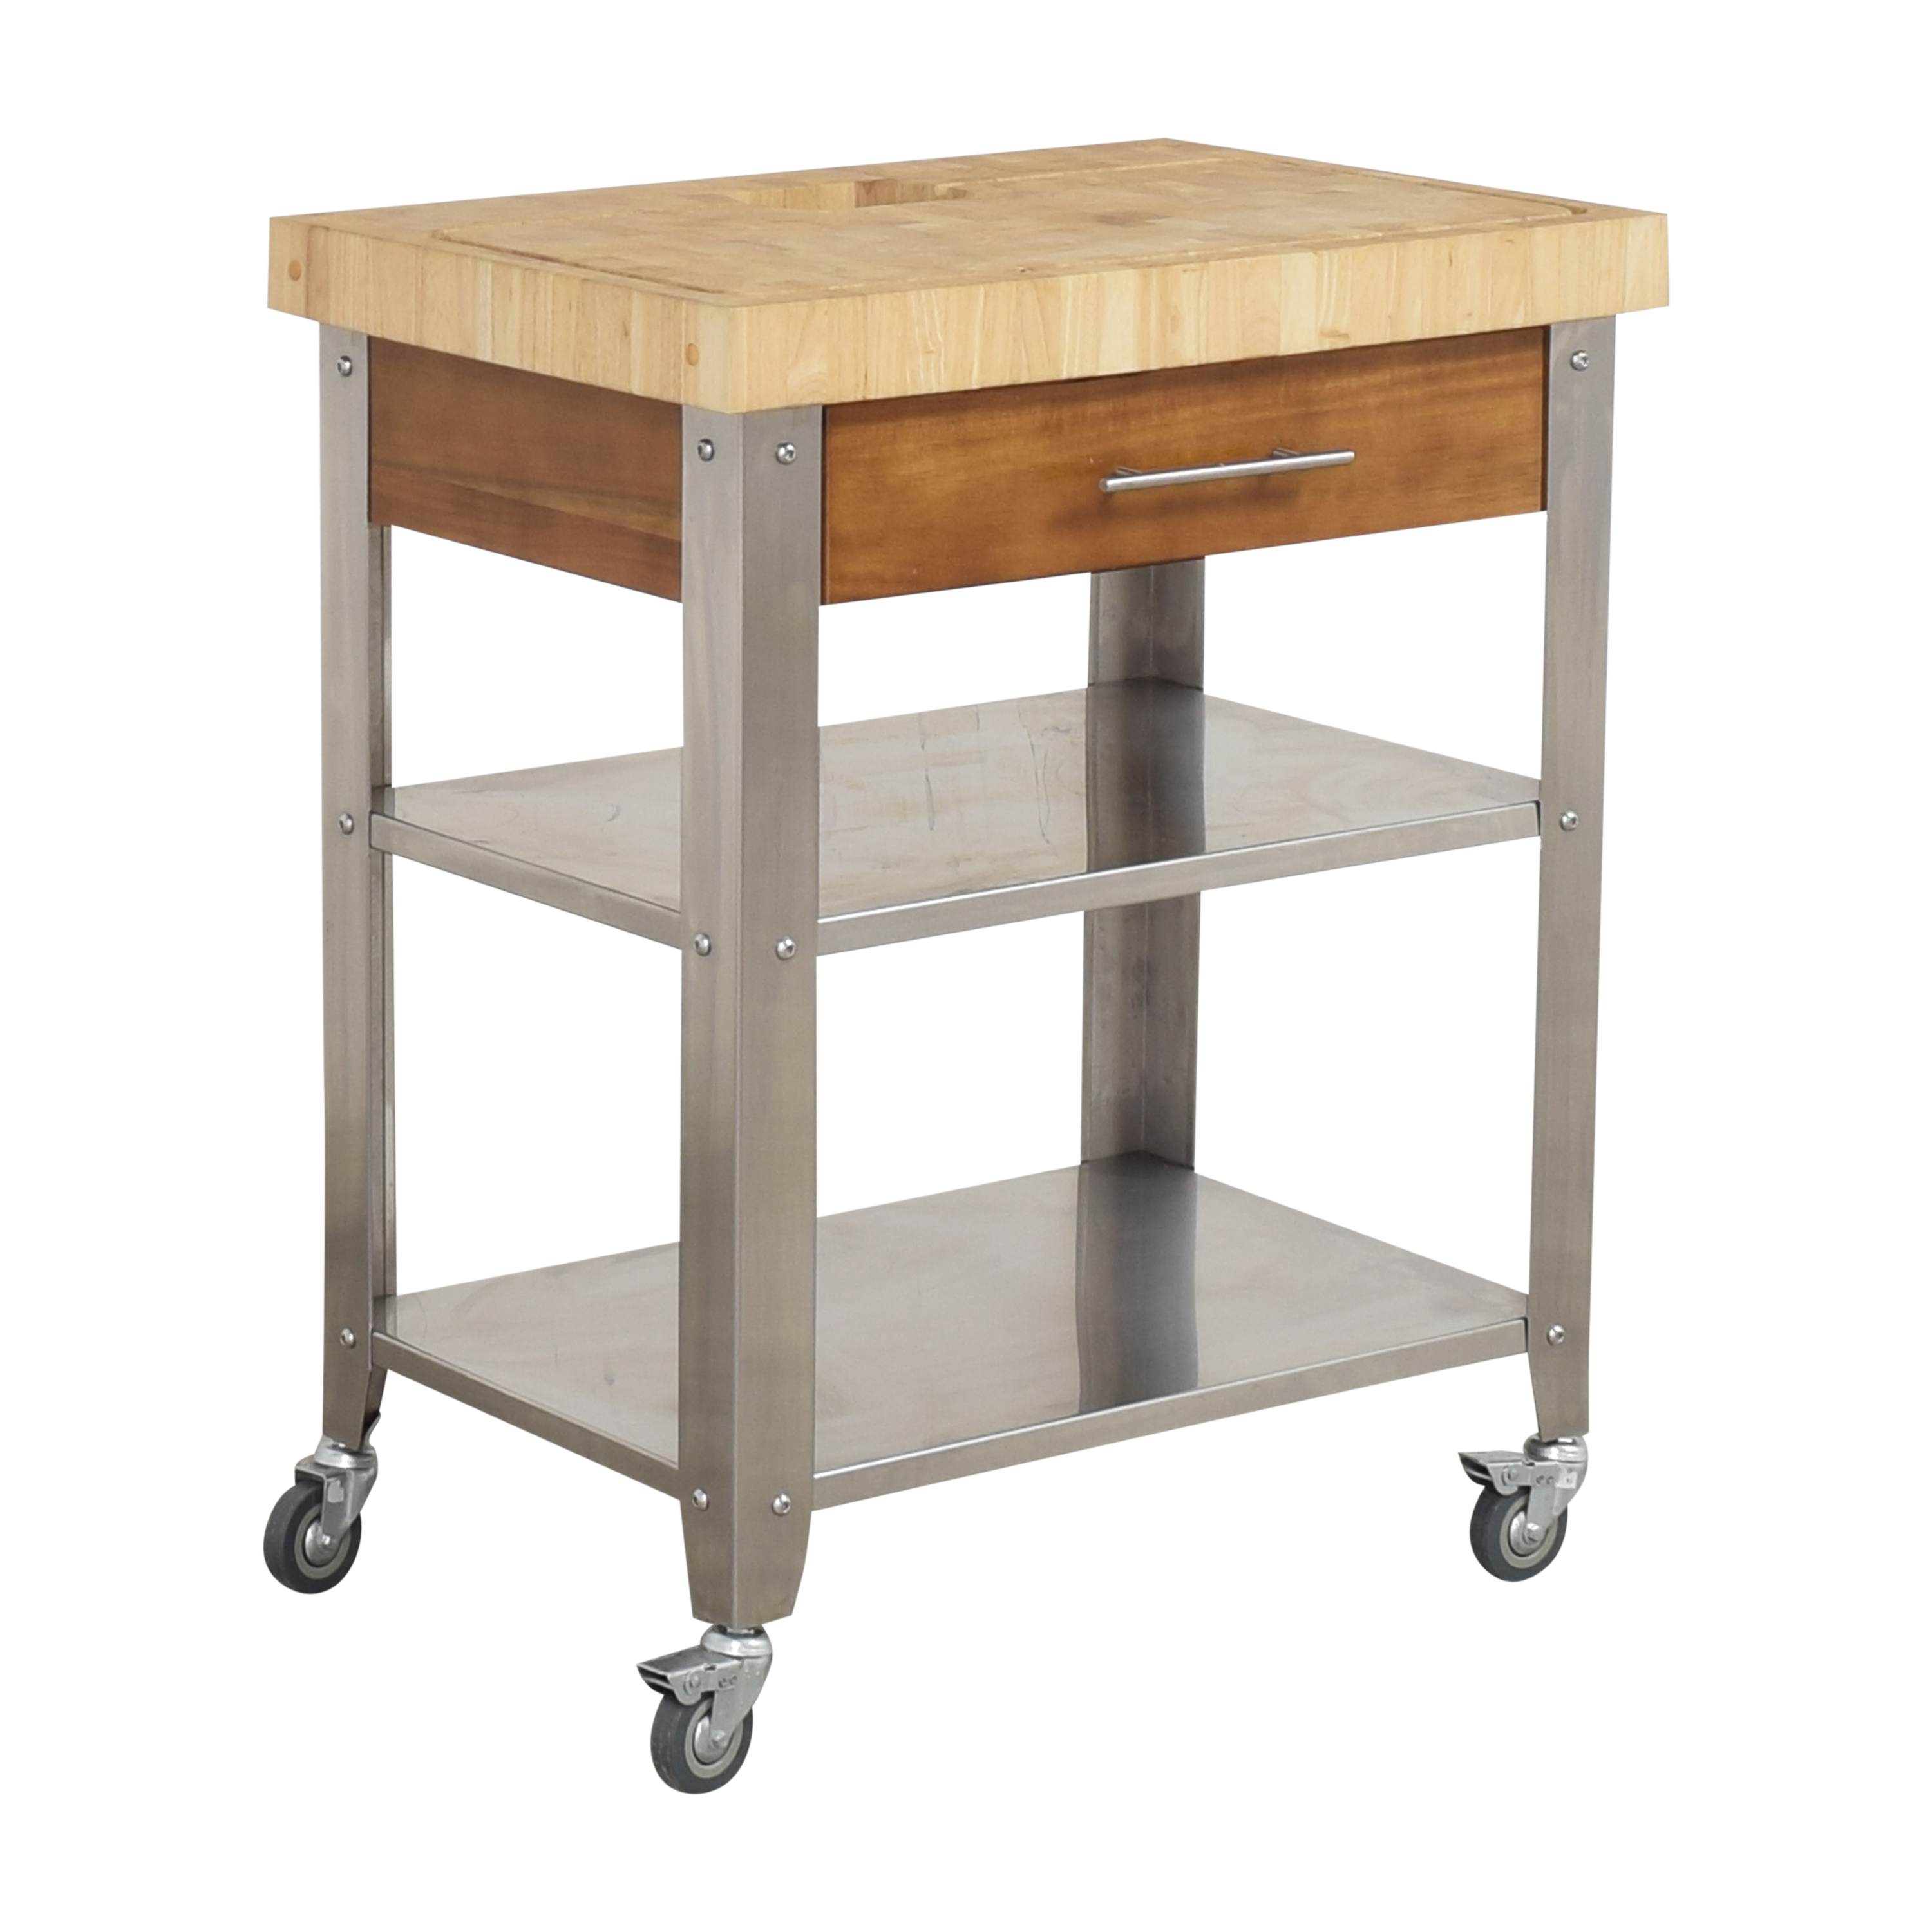 shop Chris & Chris Chris & Chris Pro Stadium Series Kitchen Cart online